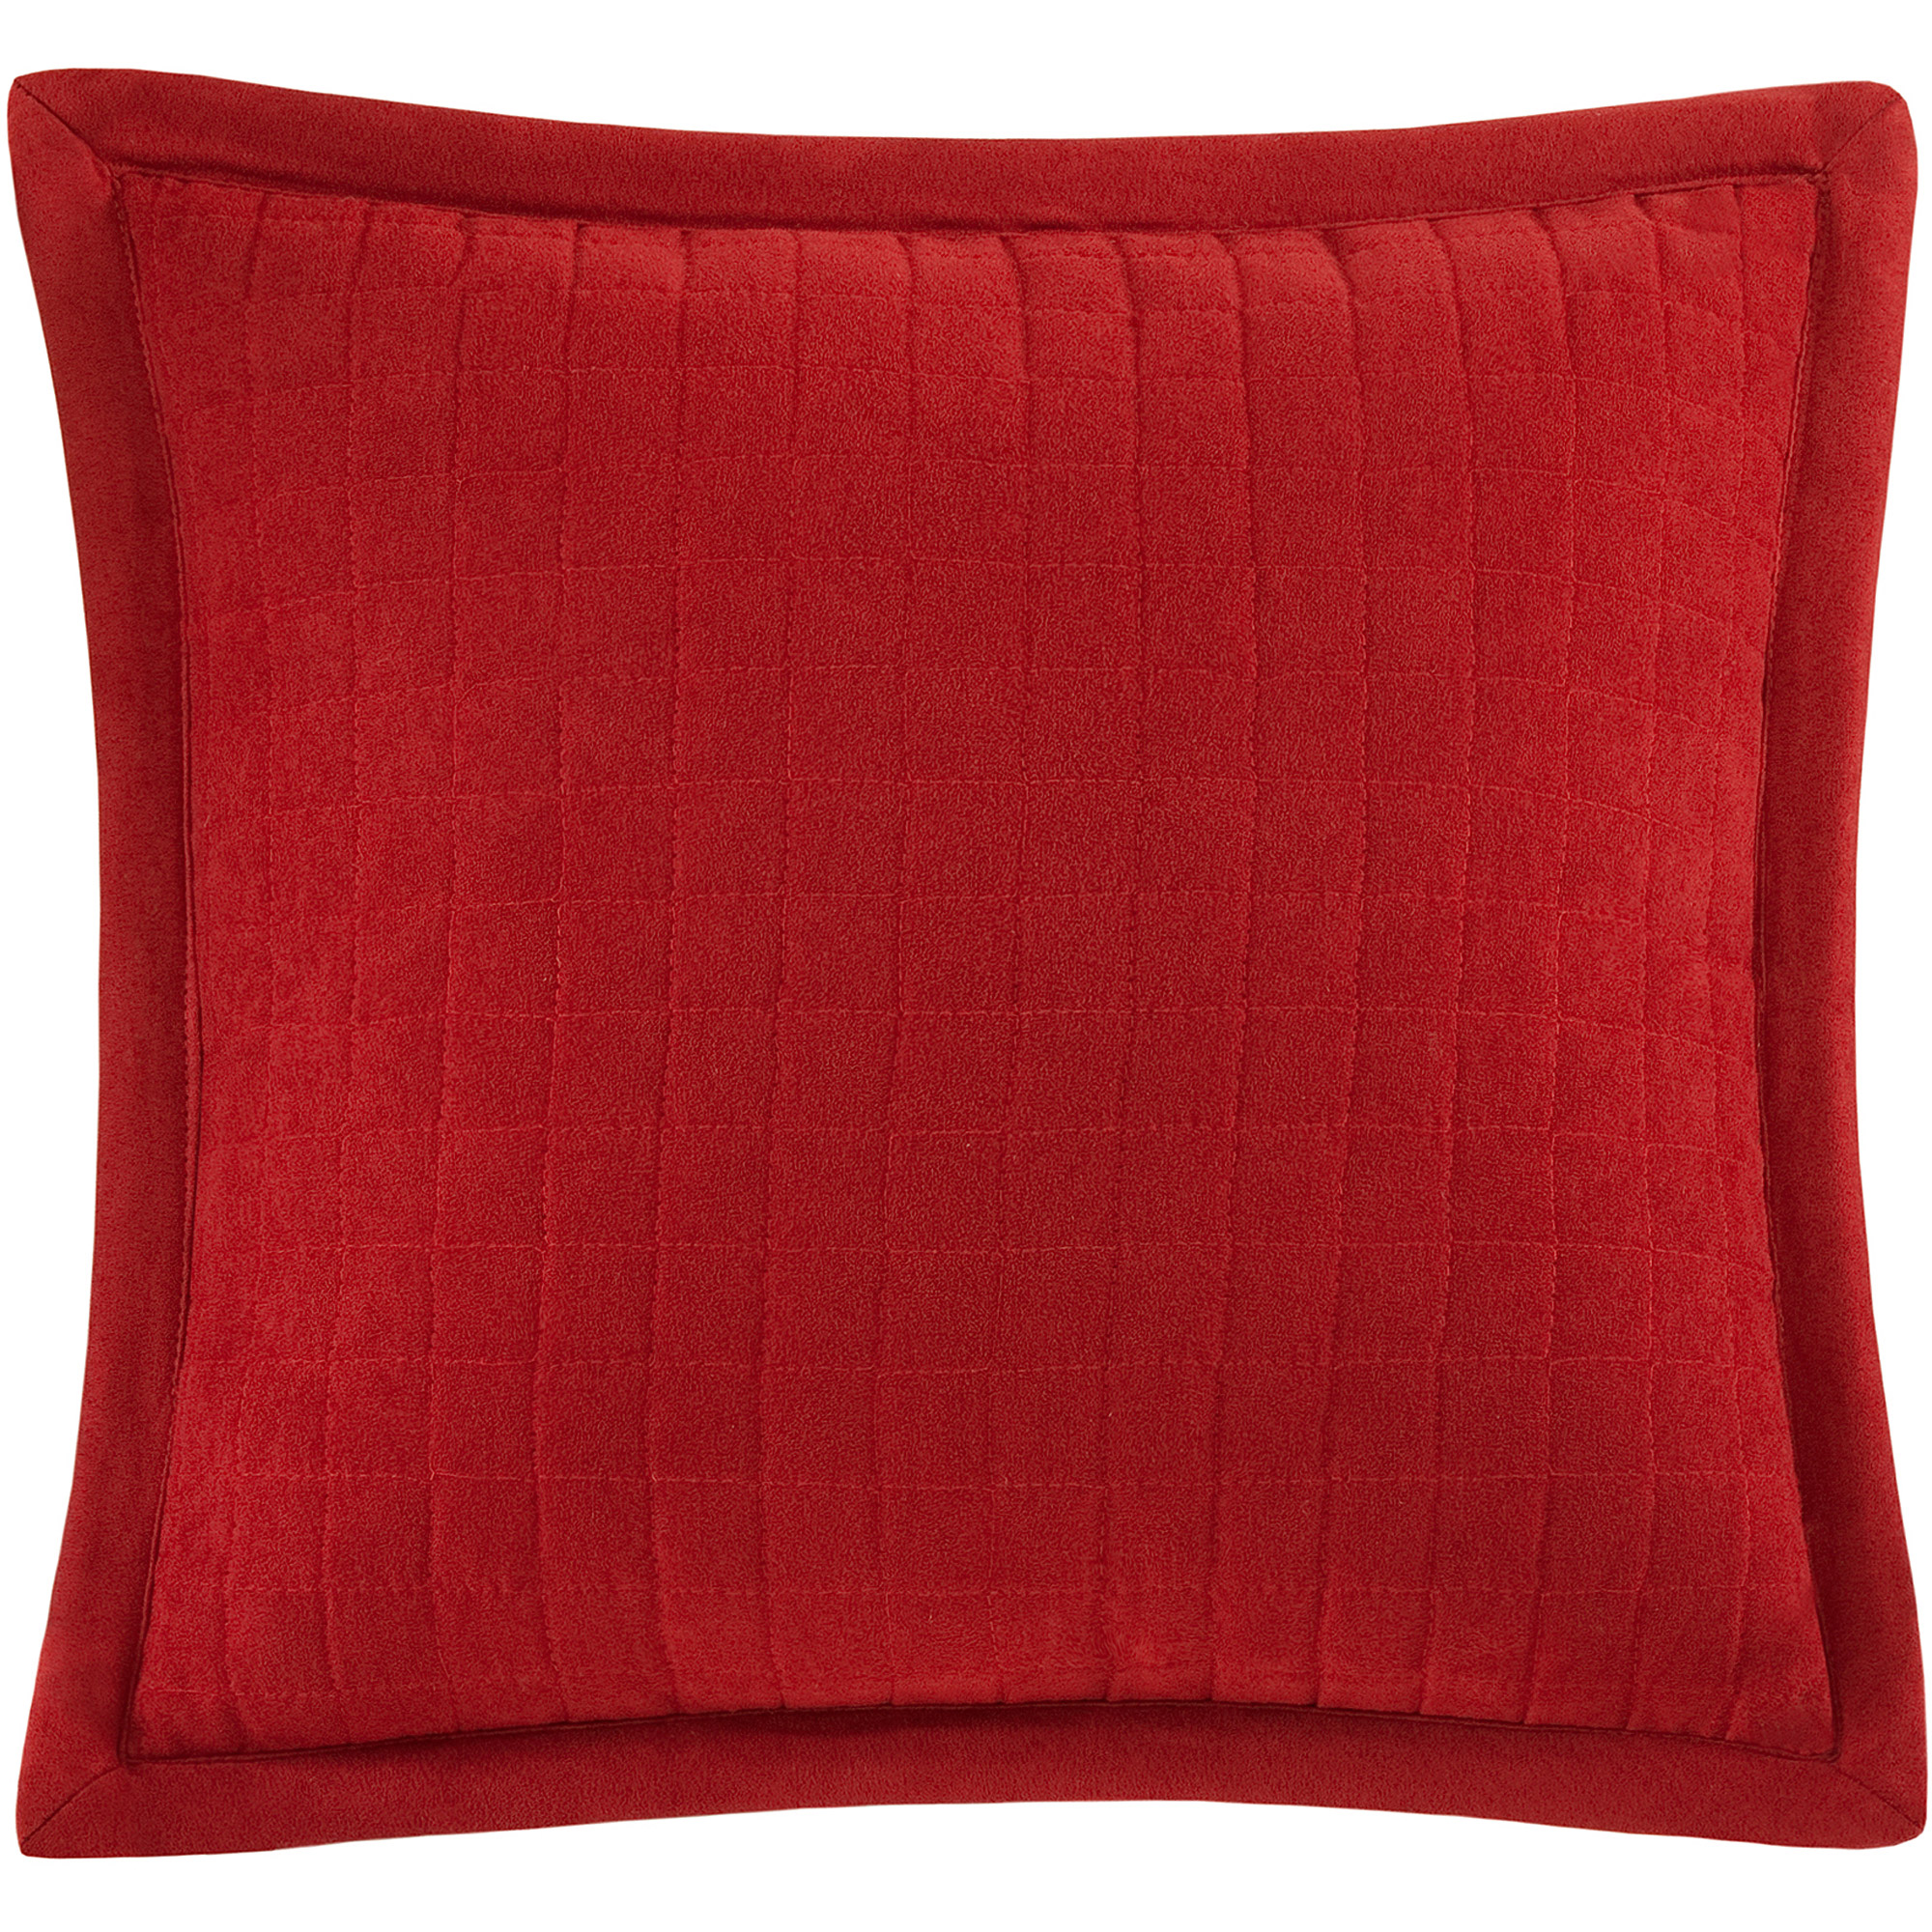 Mainstays Broken Corduroy Collection Oblong Decorative Pillow